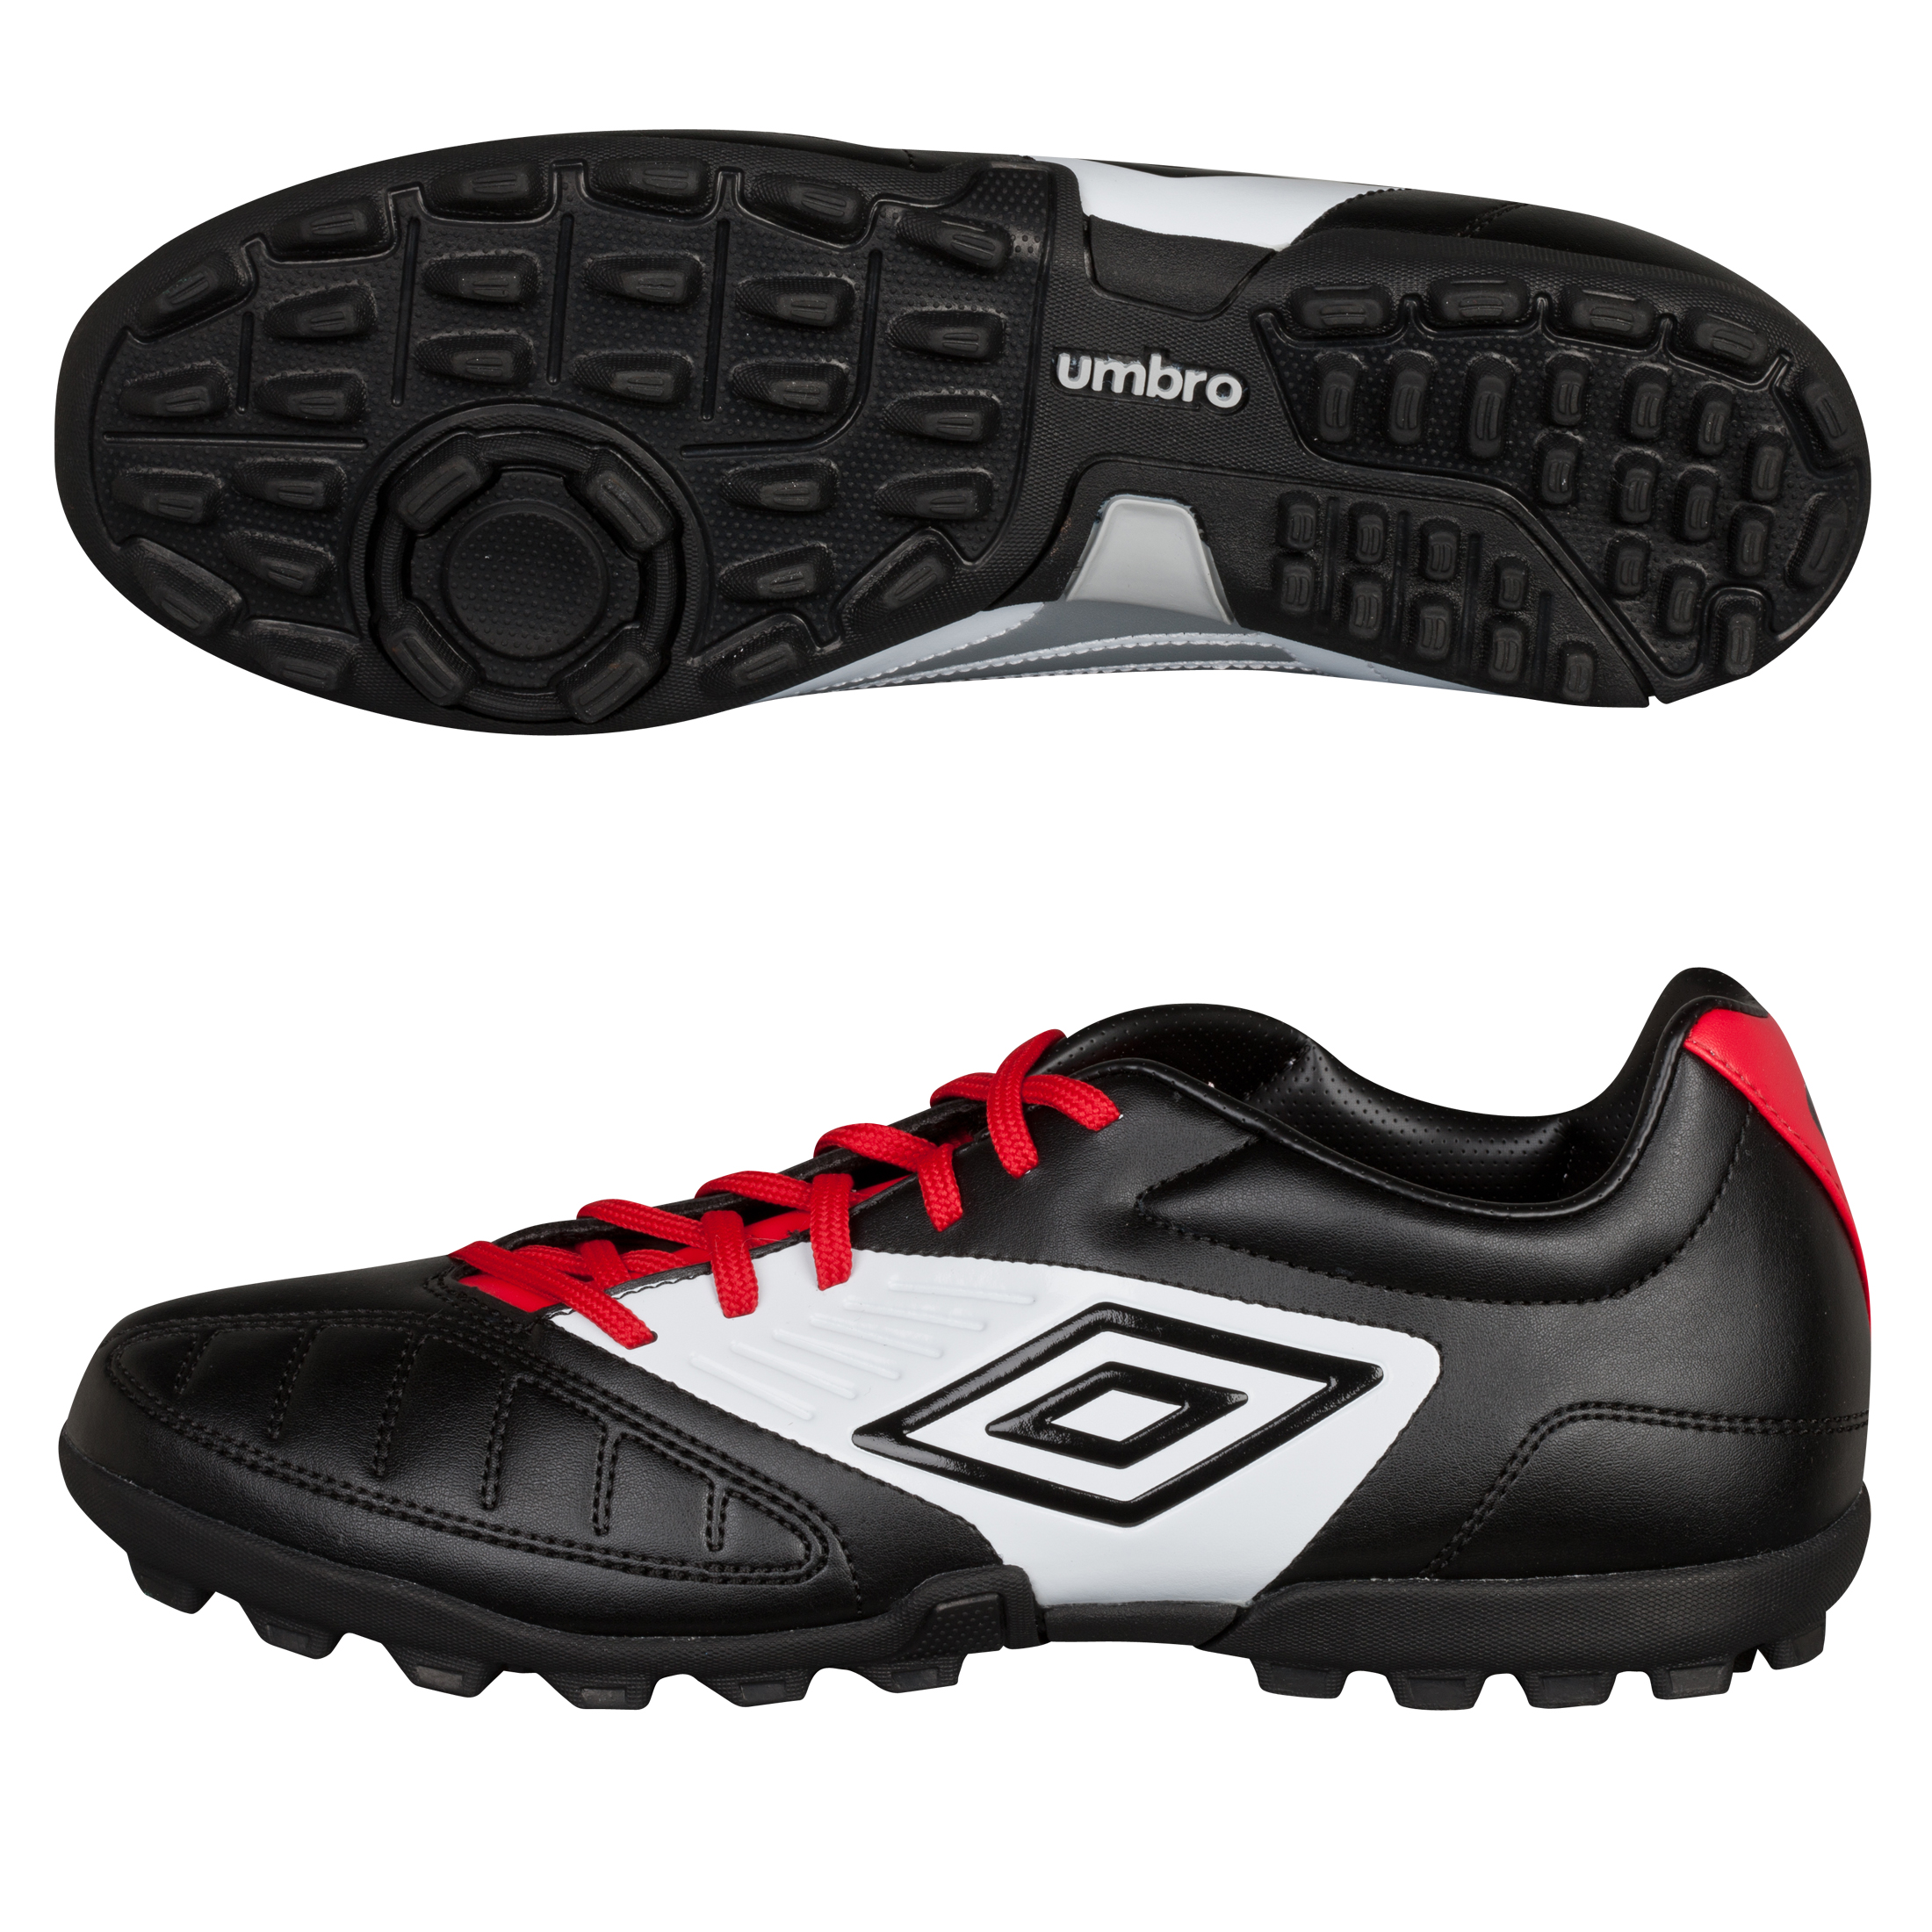 Geometra Cup Astroturf Black/White/True Red